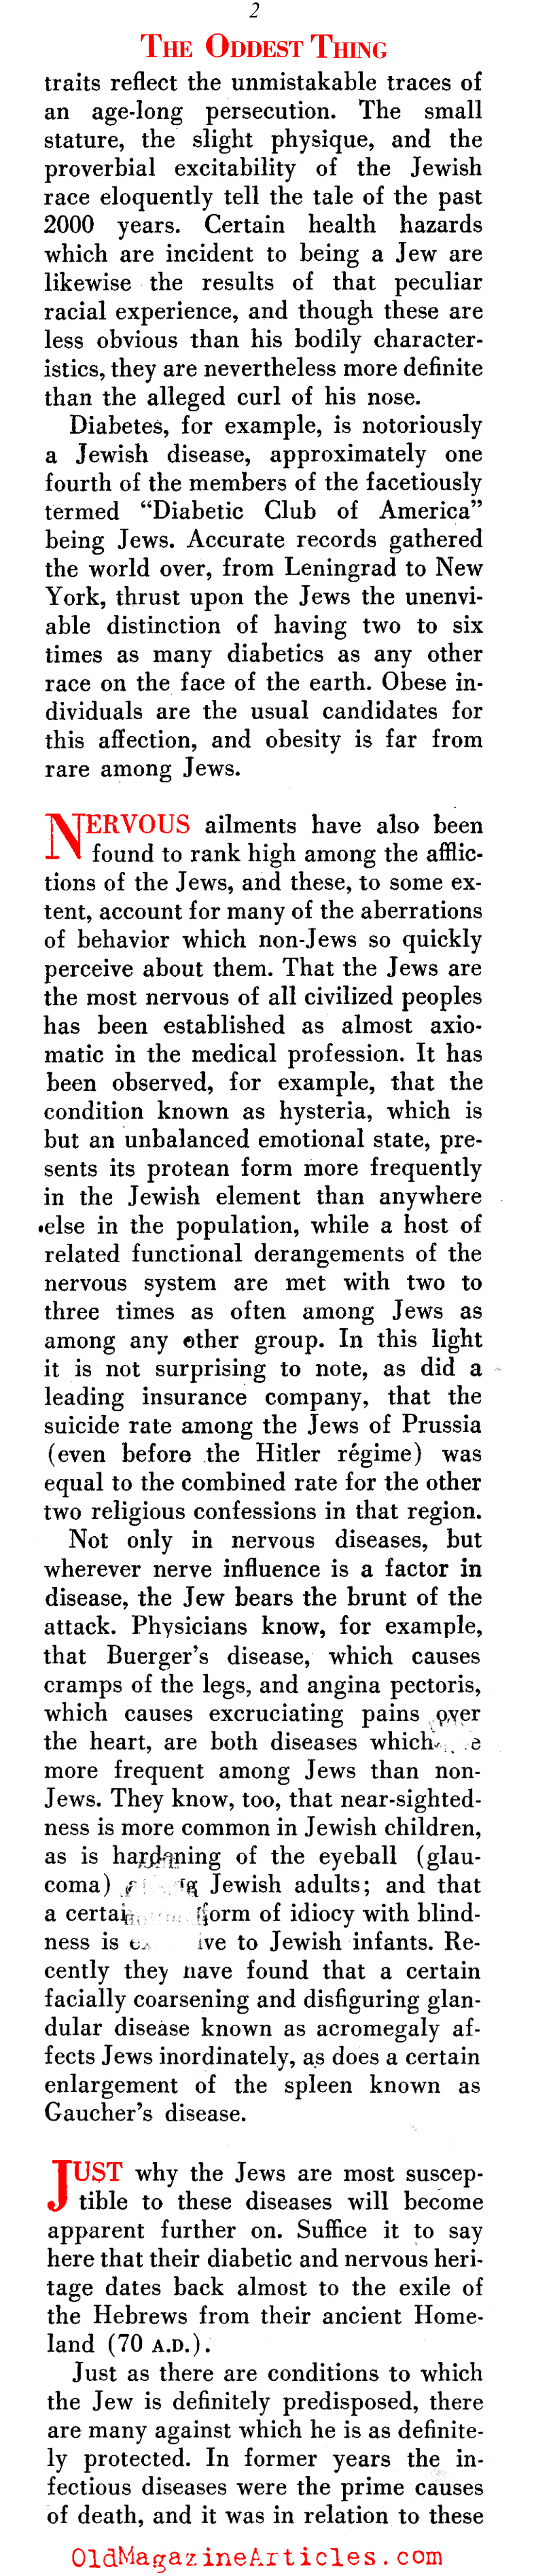 ''The Oddest Thing About the Jews'' (Scientific Americans, 1935)